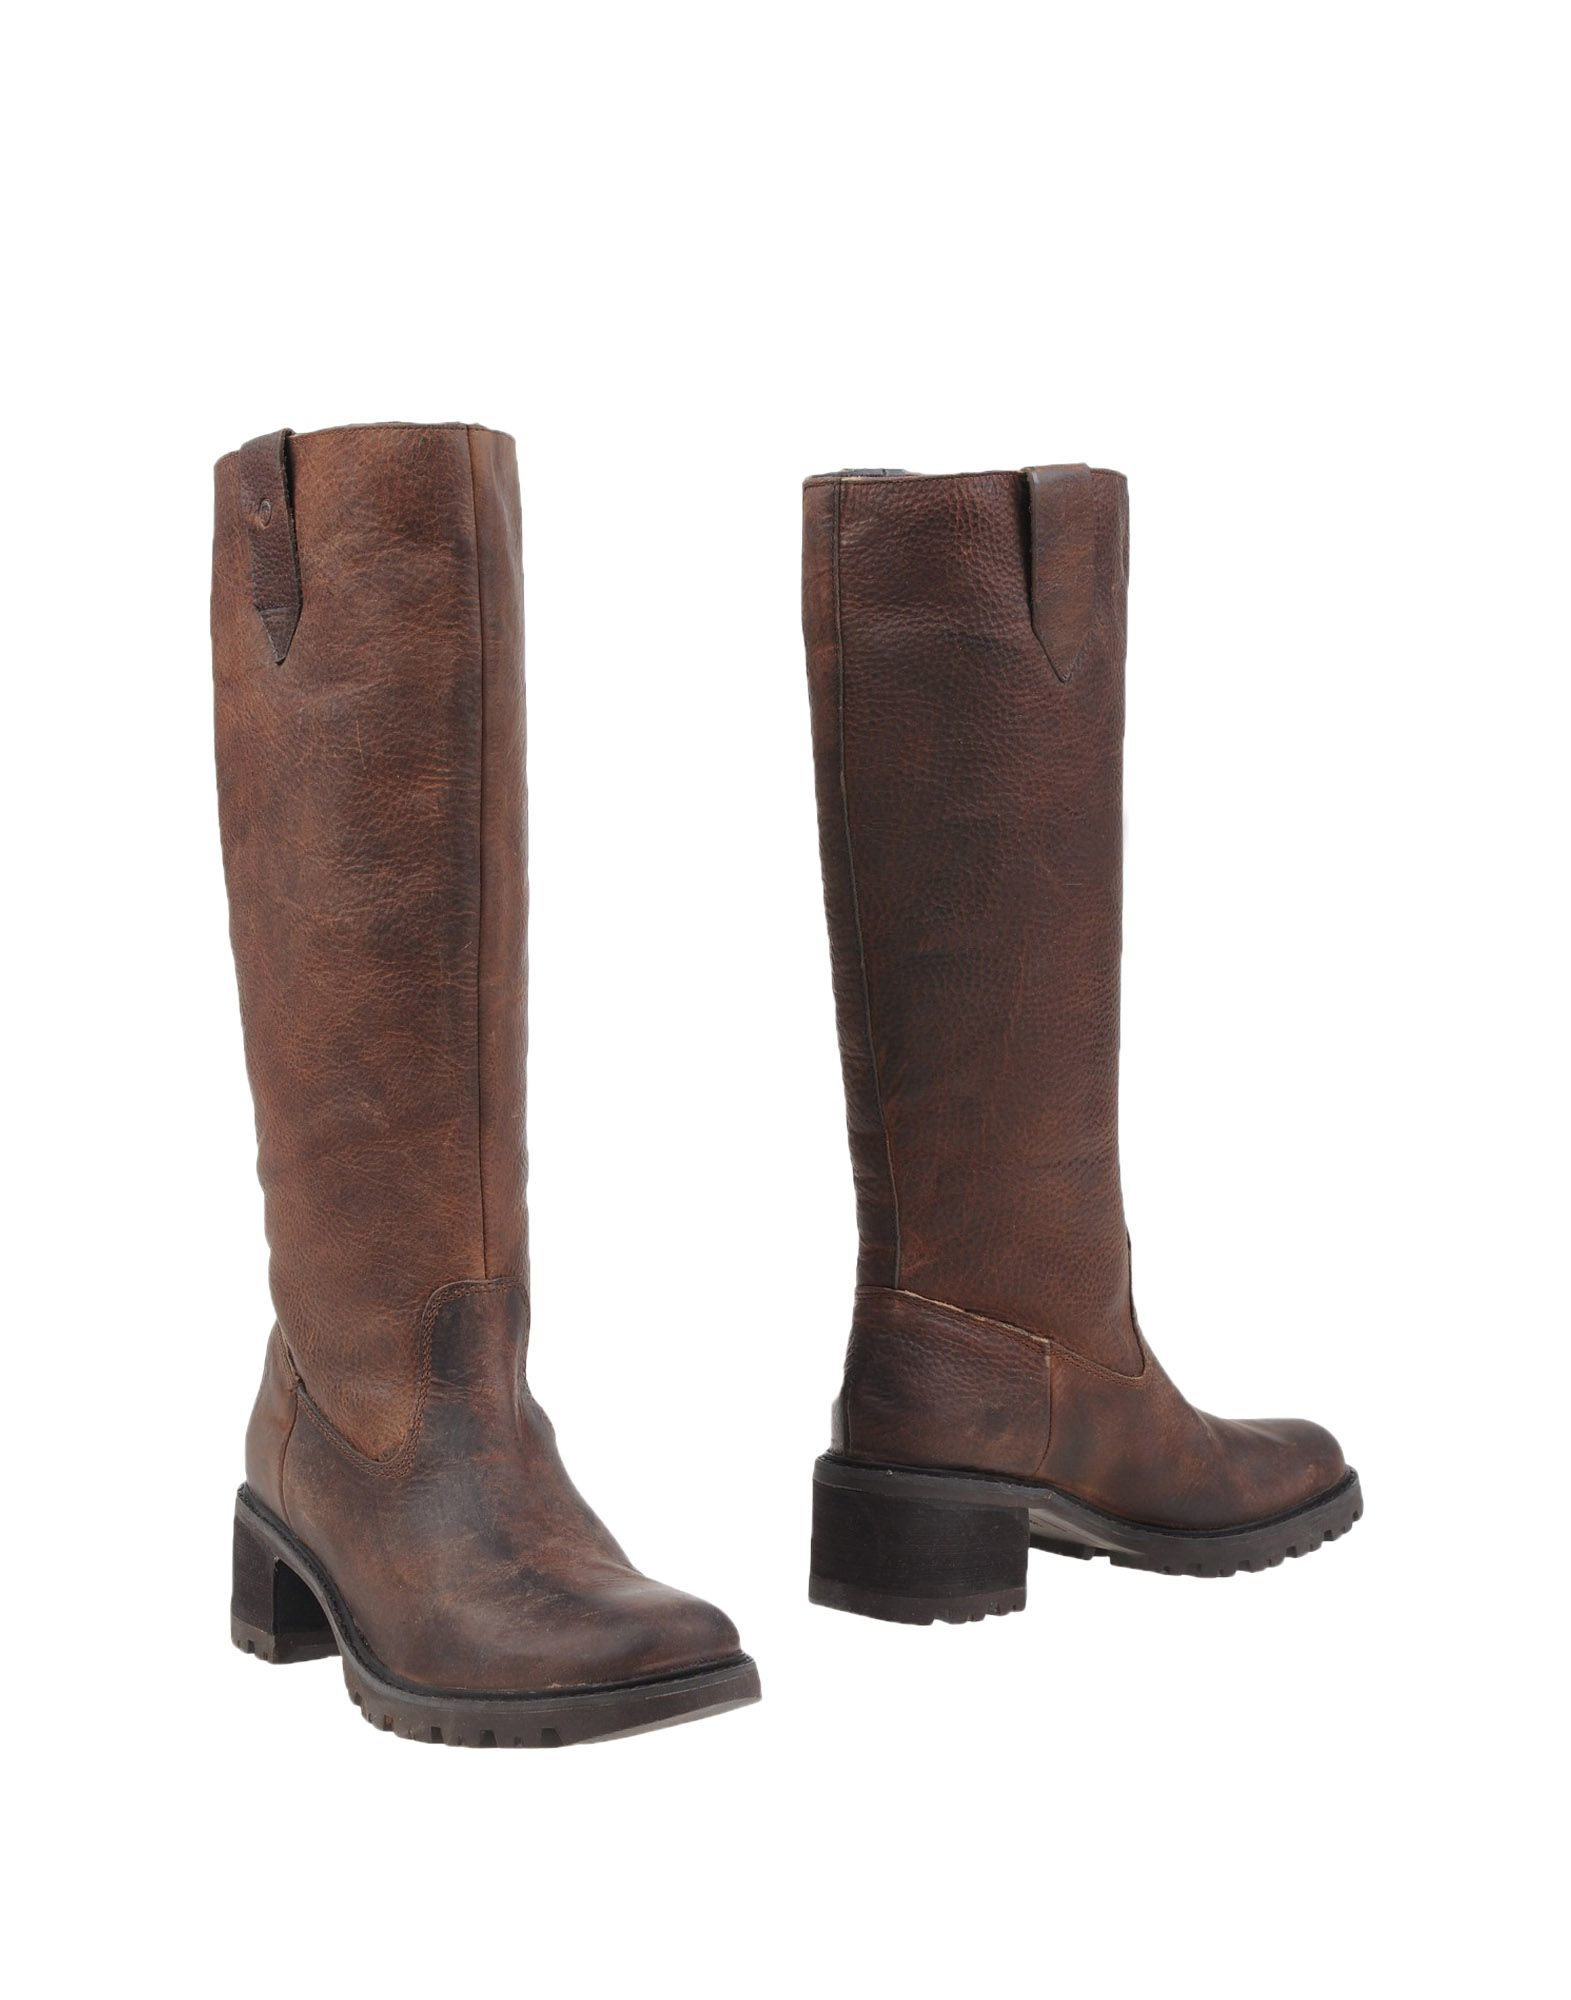 rockport boots in brown brown lyst